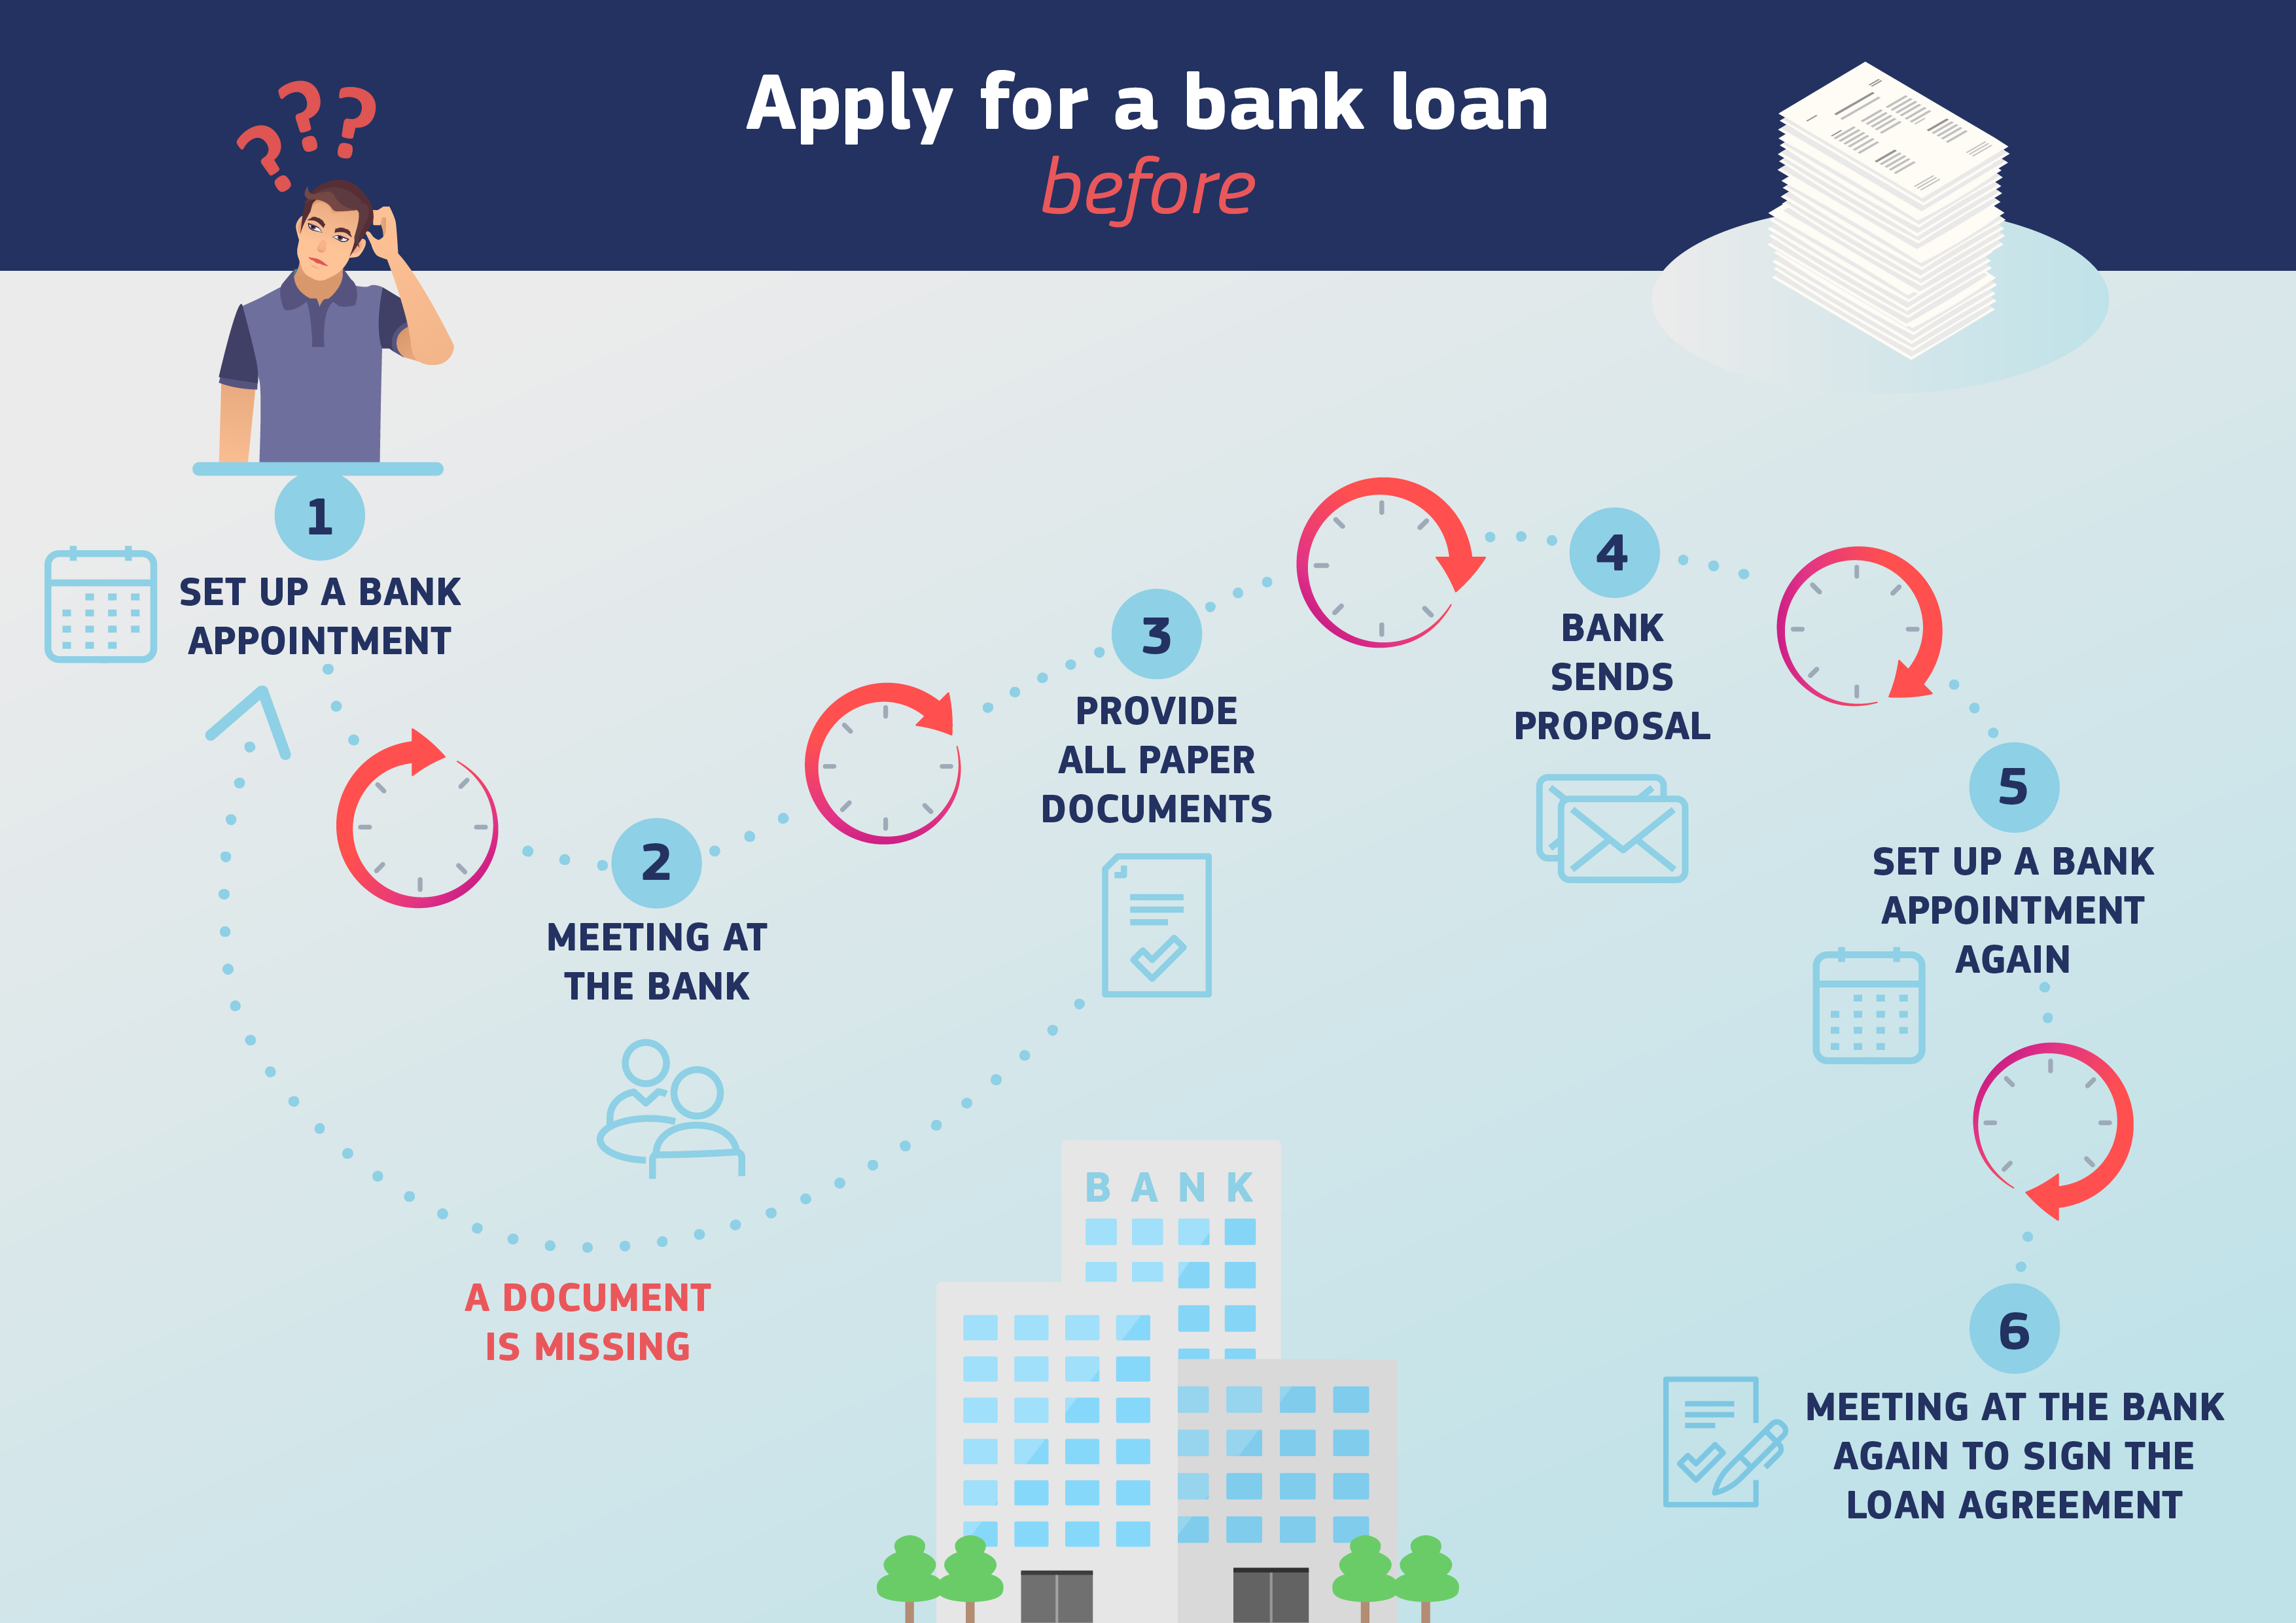 Bank loan request without using the European digital identity